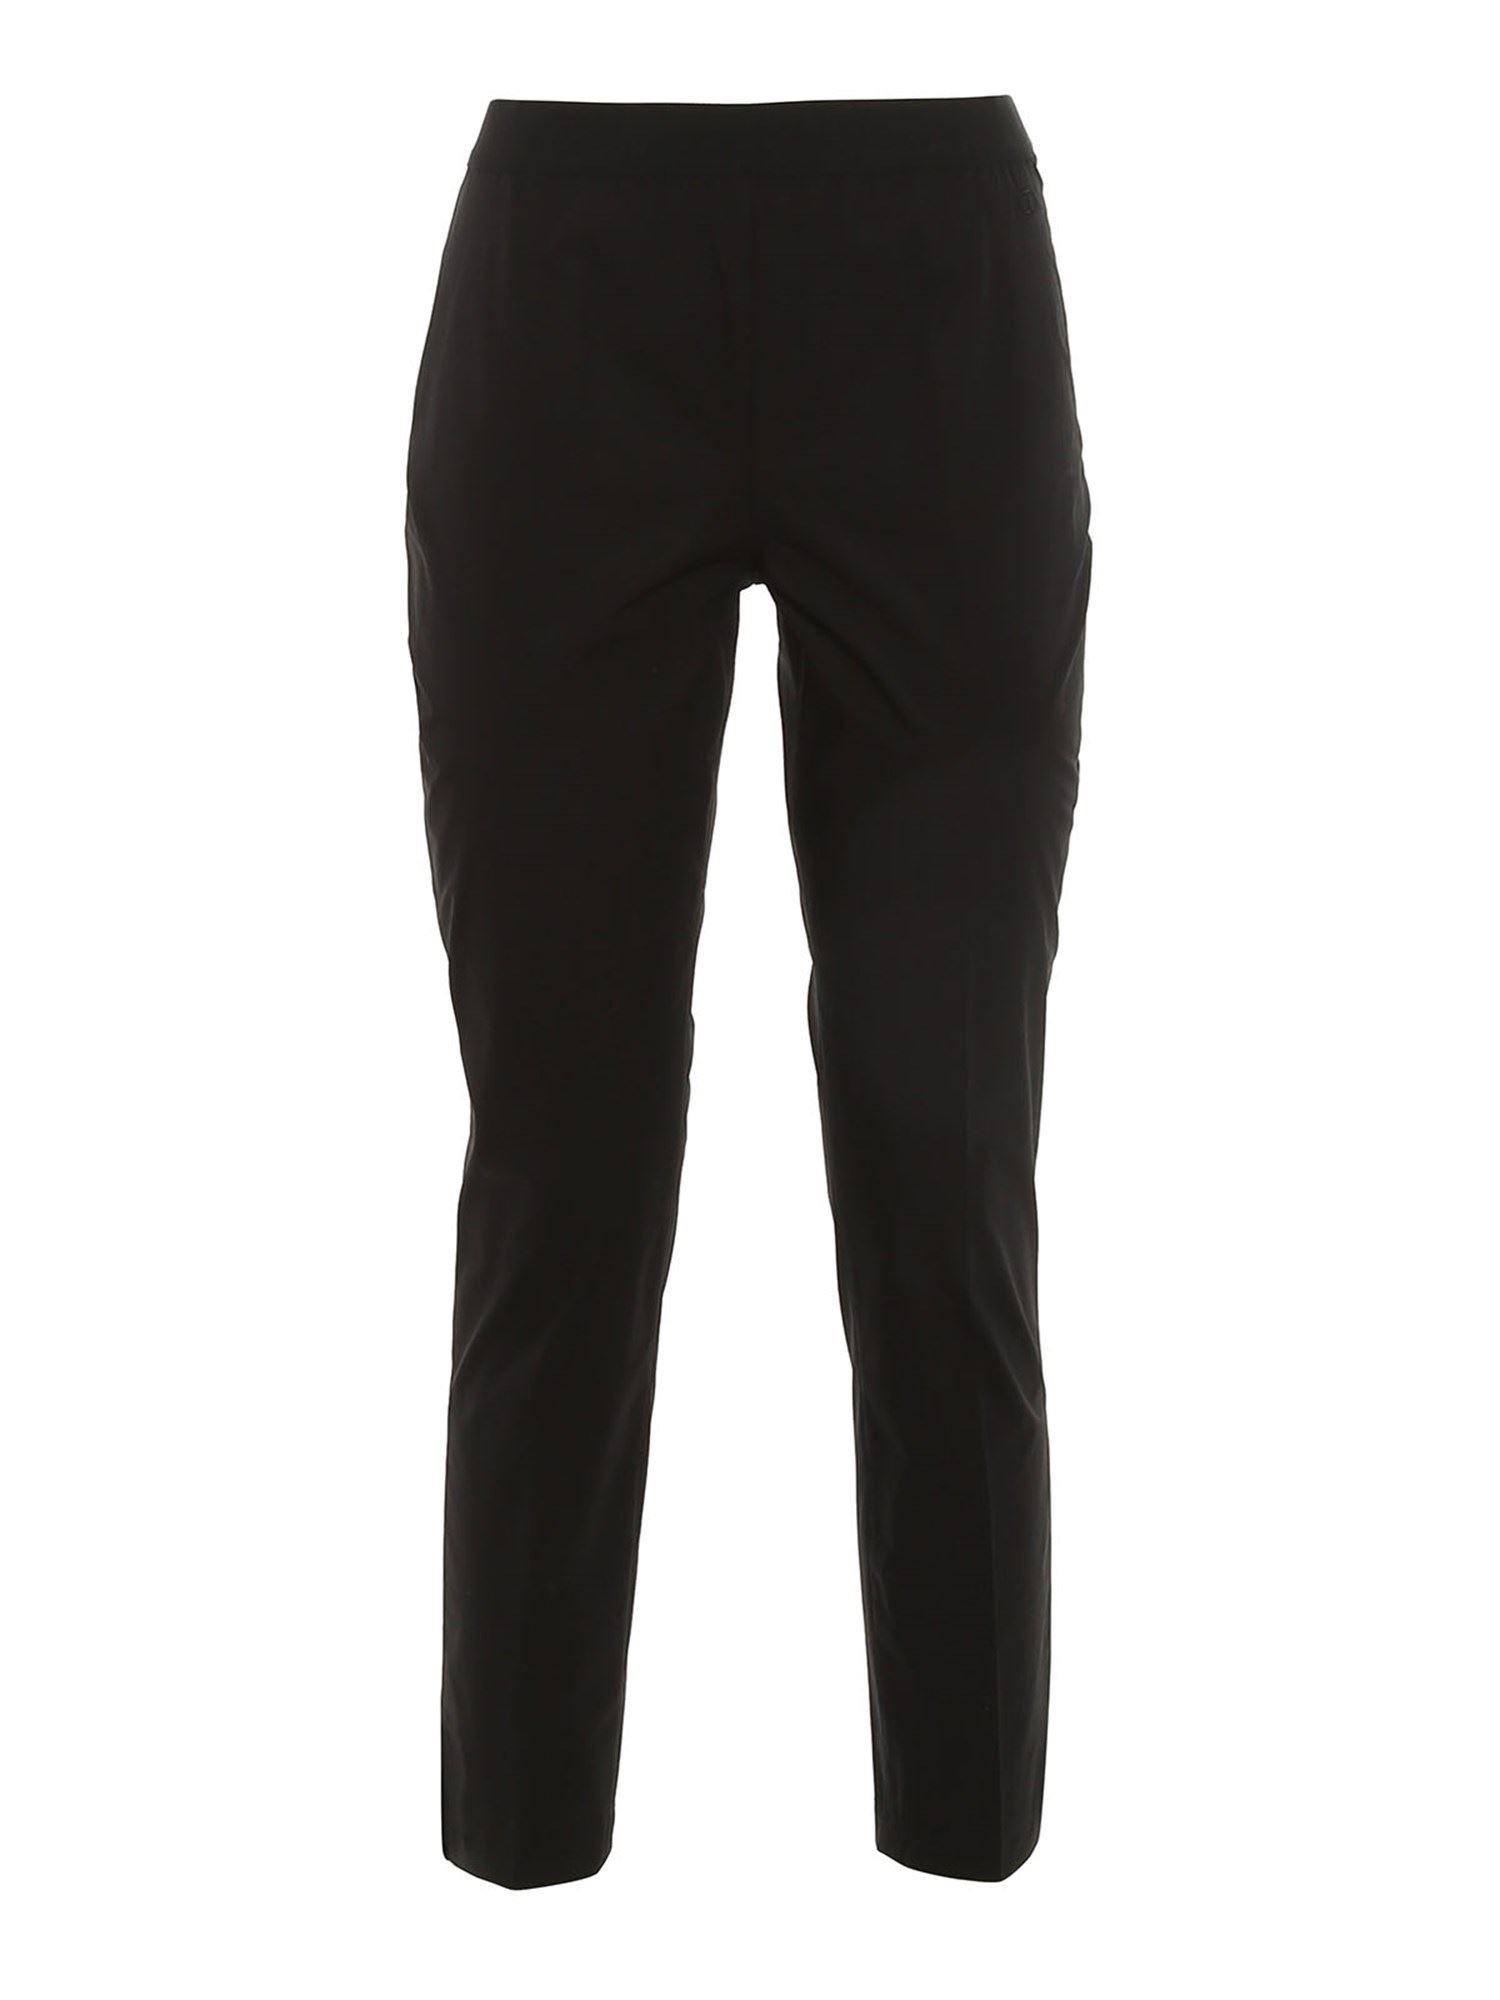 Twinset CIGARETTE TROUSERS IN BLACK